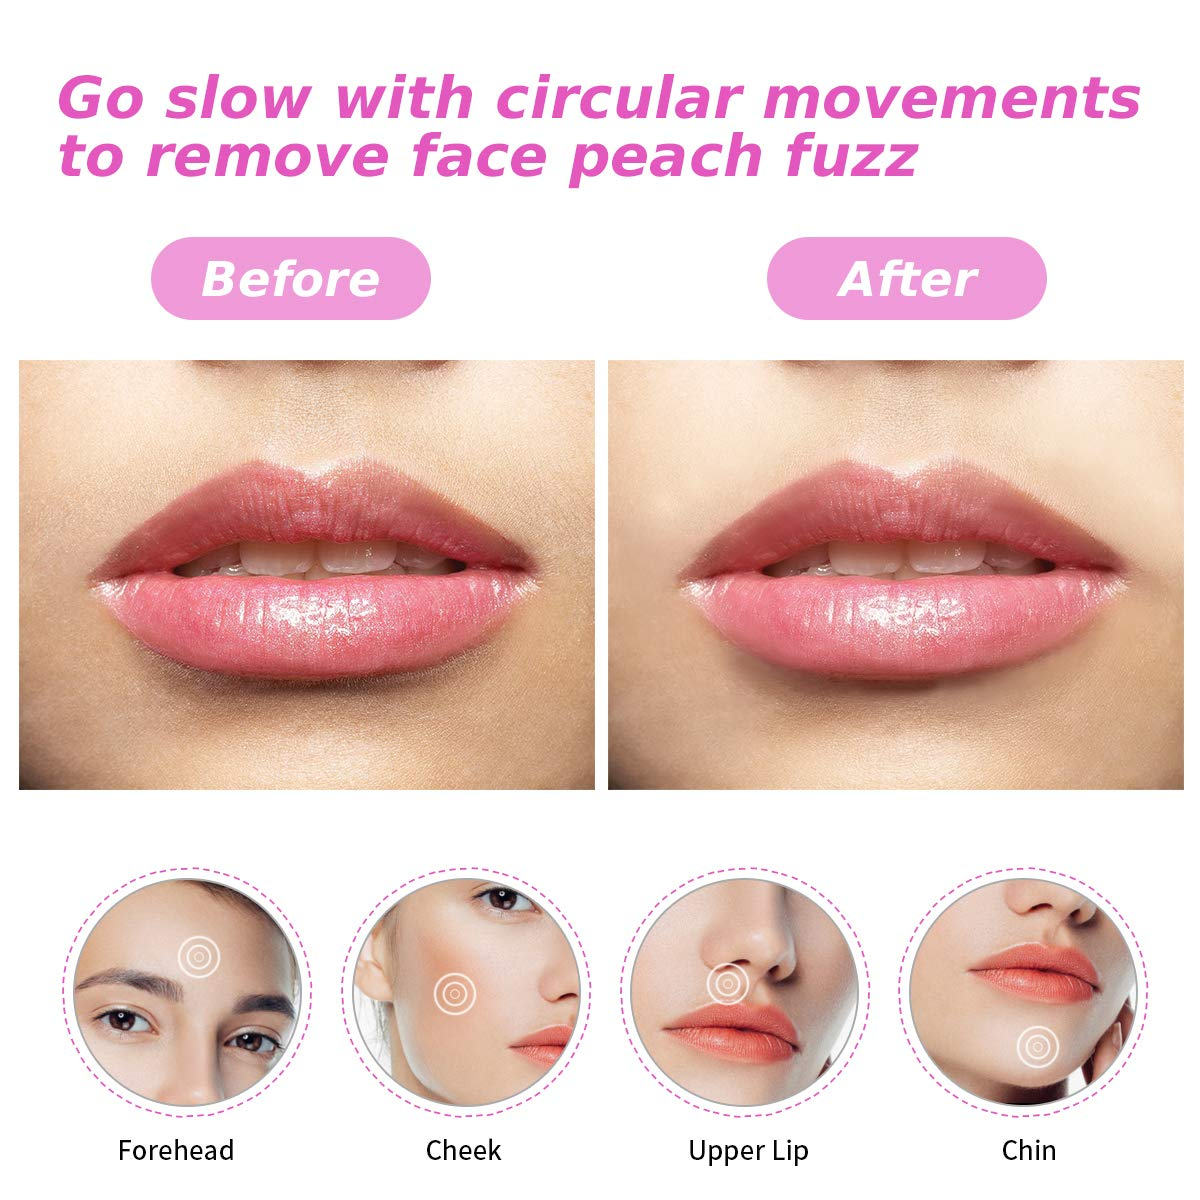 Facial Hair Removal for Women-ProCIV Painless Hair Remover Nose Hair Trimmer Eyebrow Shaver Waterproof Hair Remover Body Shaver Beard Trimmer USB Electric Rechargeable 5 in 1 Grooming